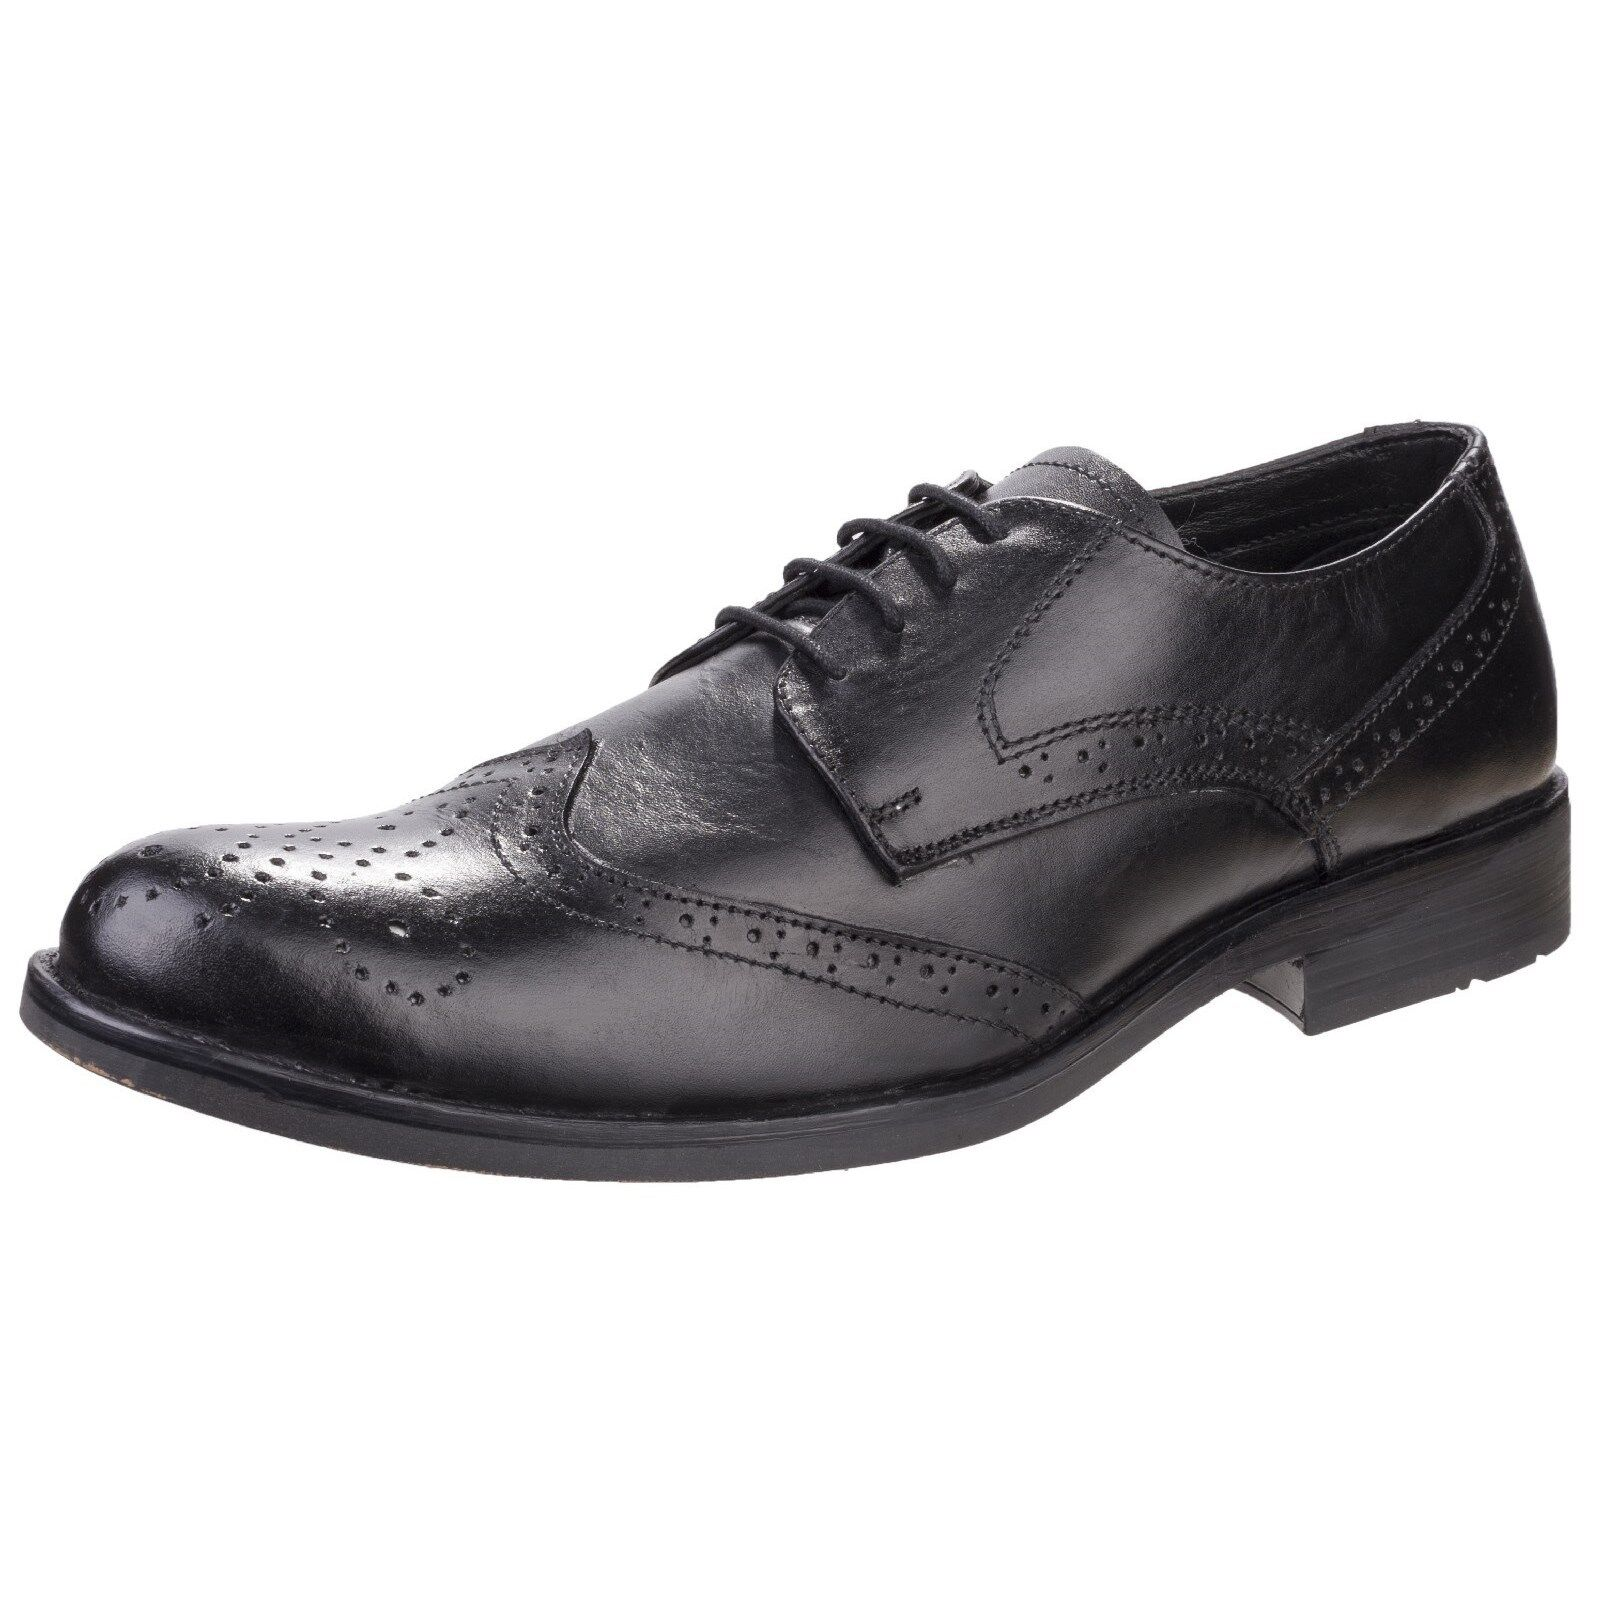 5d87c04c868d Details about Fleet & Foster Tom Leather Lace Up Brogue Style Mens Oxford  Shoes UK 6-12